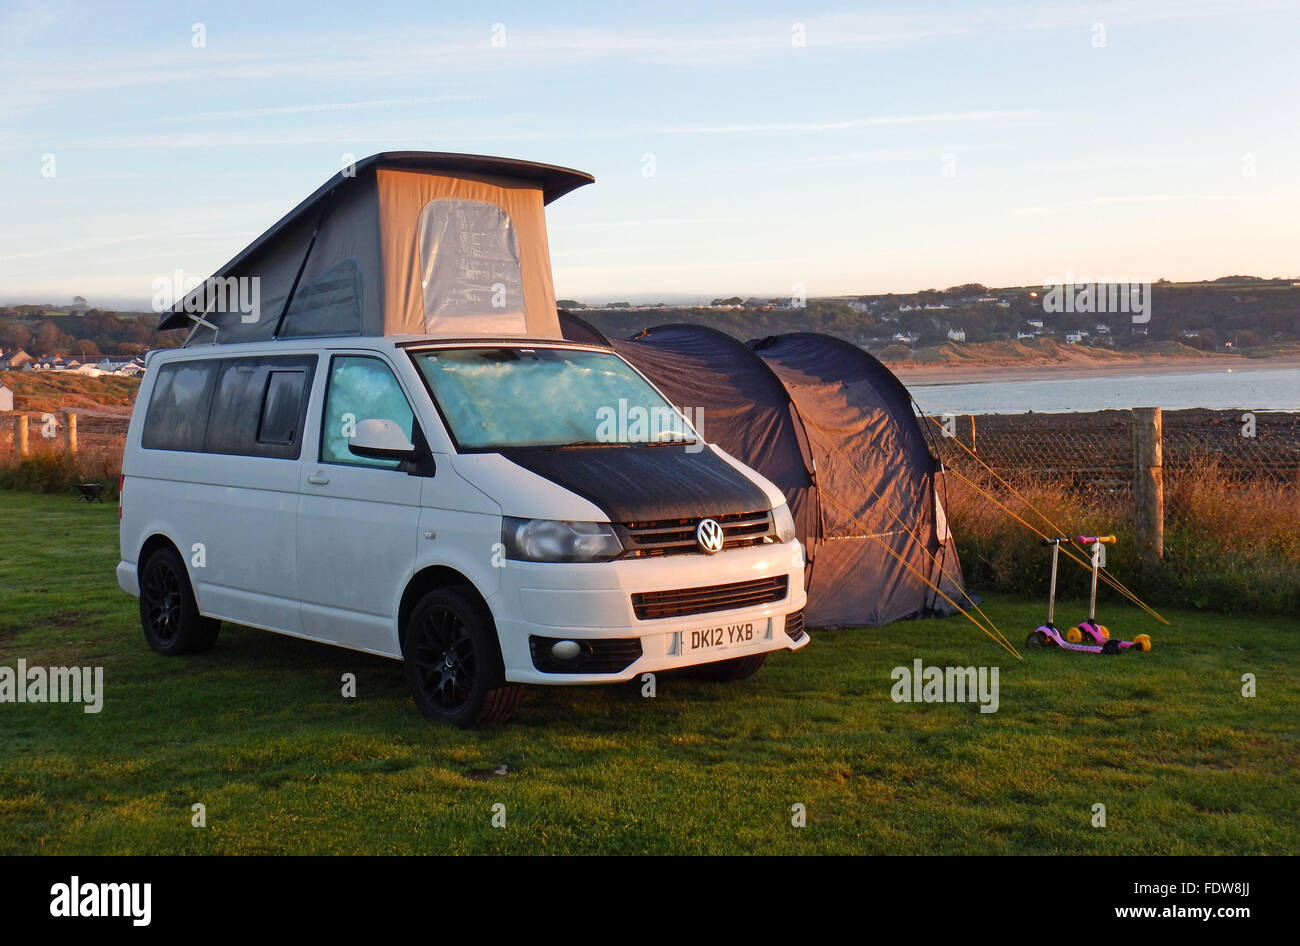 vw t5 stock photos vw t5 stock images alamy. Black Bedroom Furniture Sets. Home Design Ideas